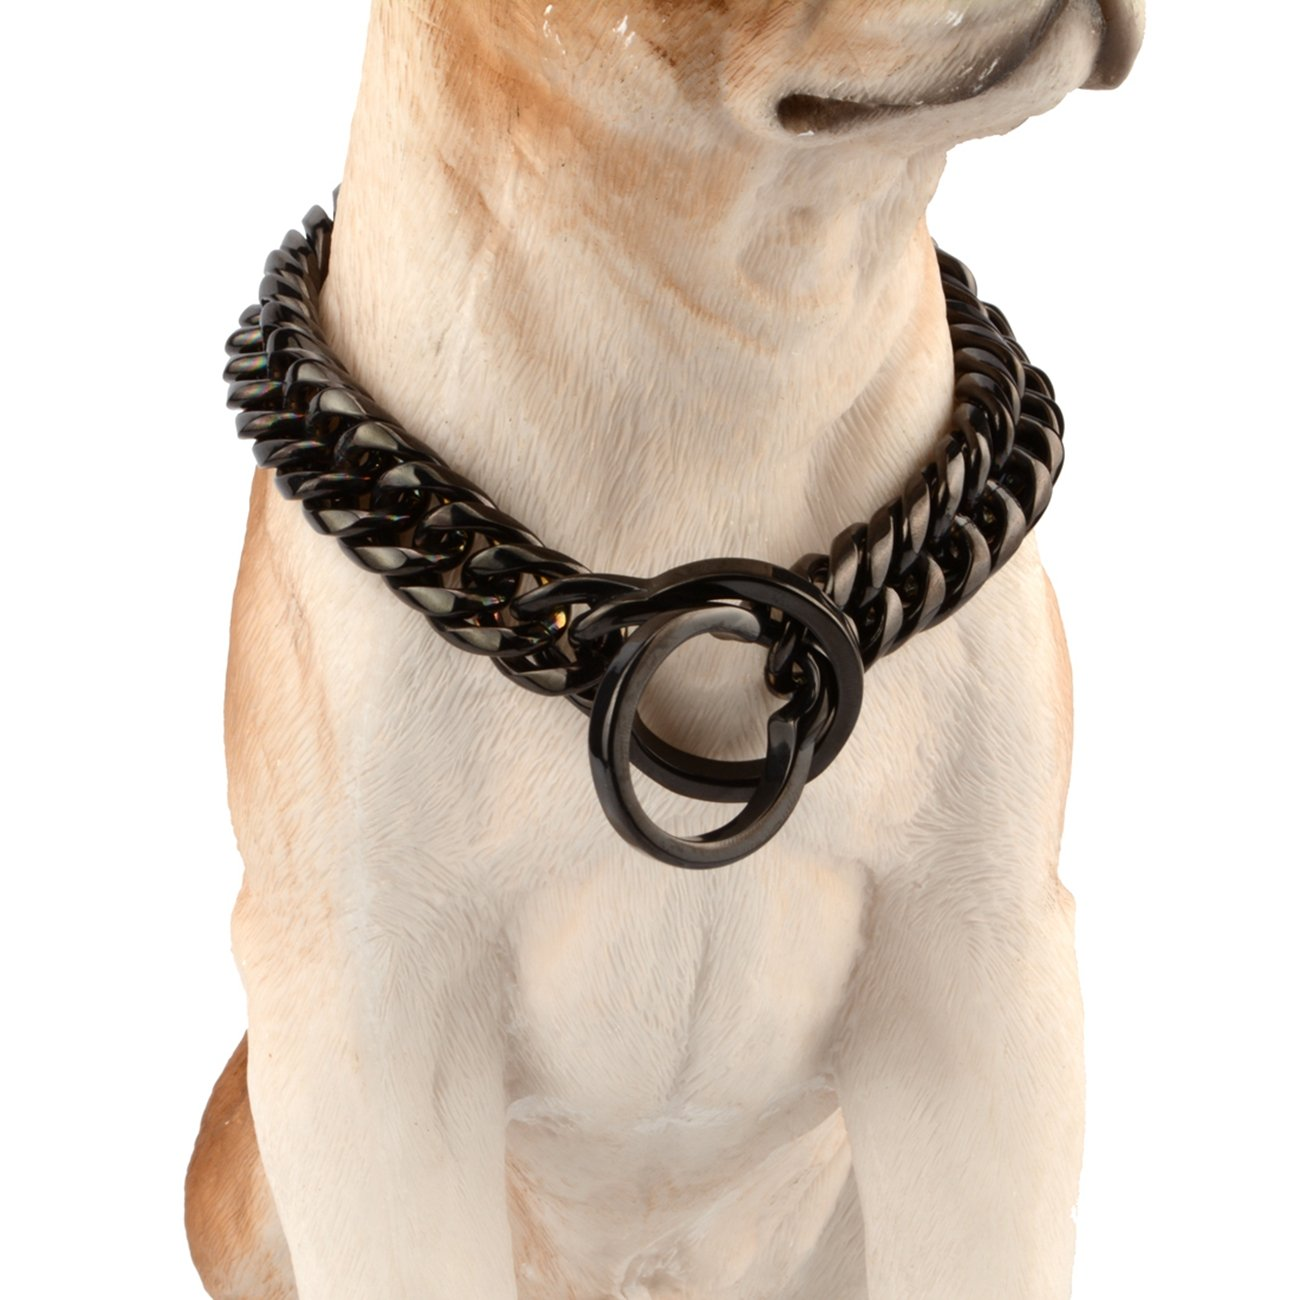 14inch recommend dog's neck 10inch Innovative jewelry 16mm Black Solid Stainless Steel Pet Dog Choke Curb Chain Collar Bulldog,Pit Bull, Mastiff, Big Breeds 14-34 (14 )